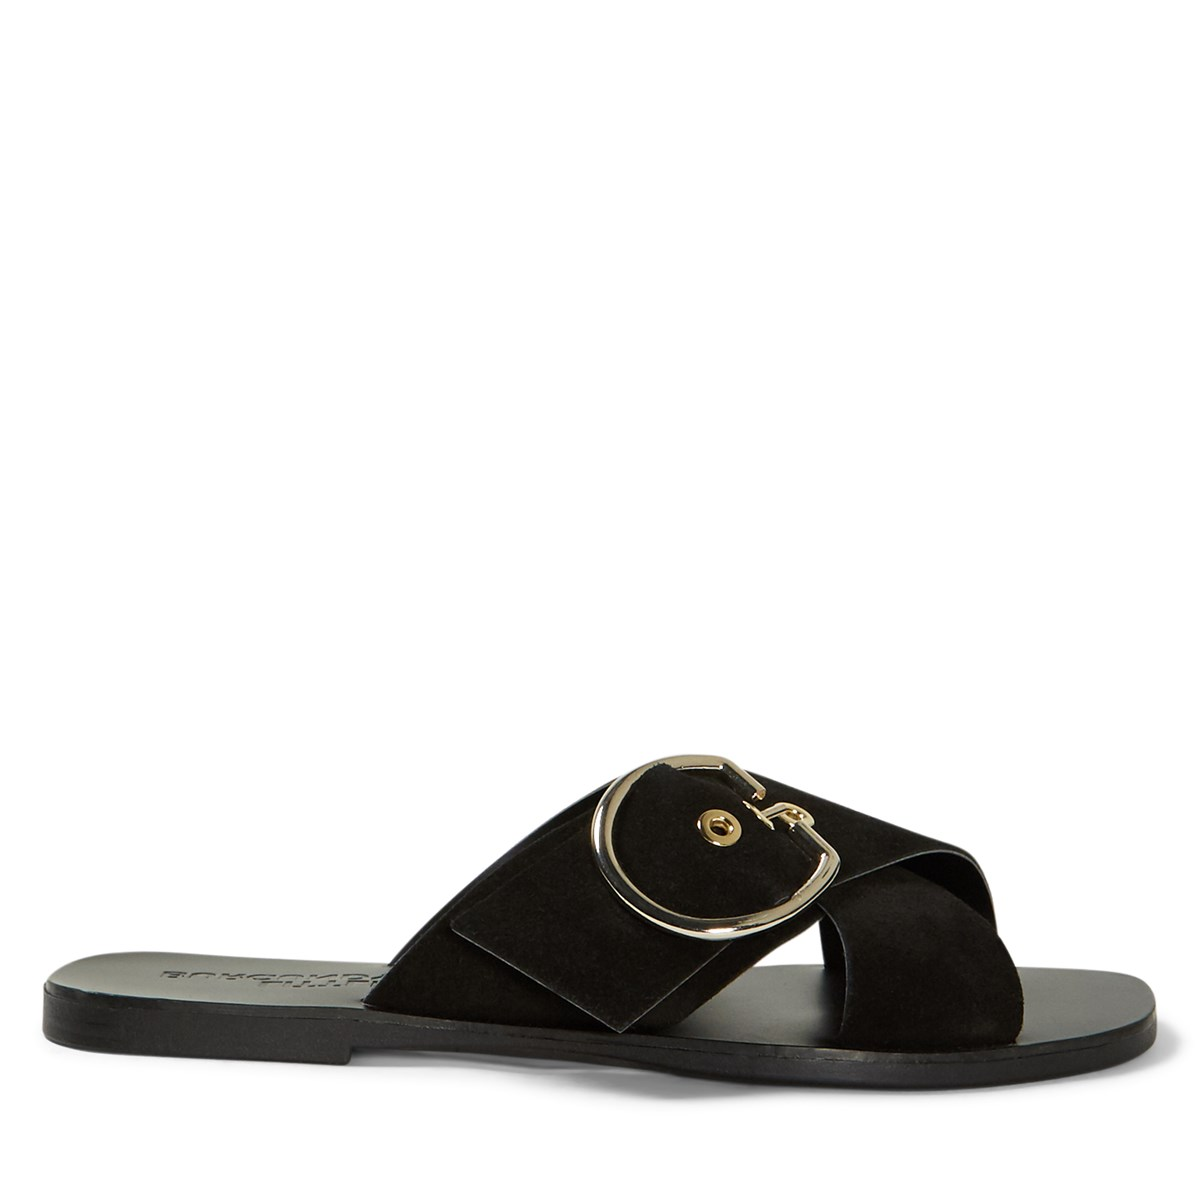 Women's Allegra Slide Sandals in Black